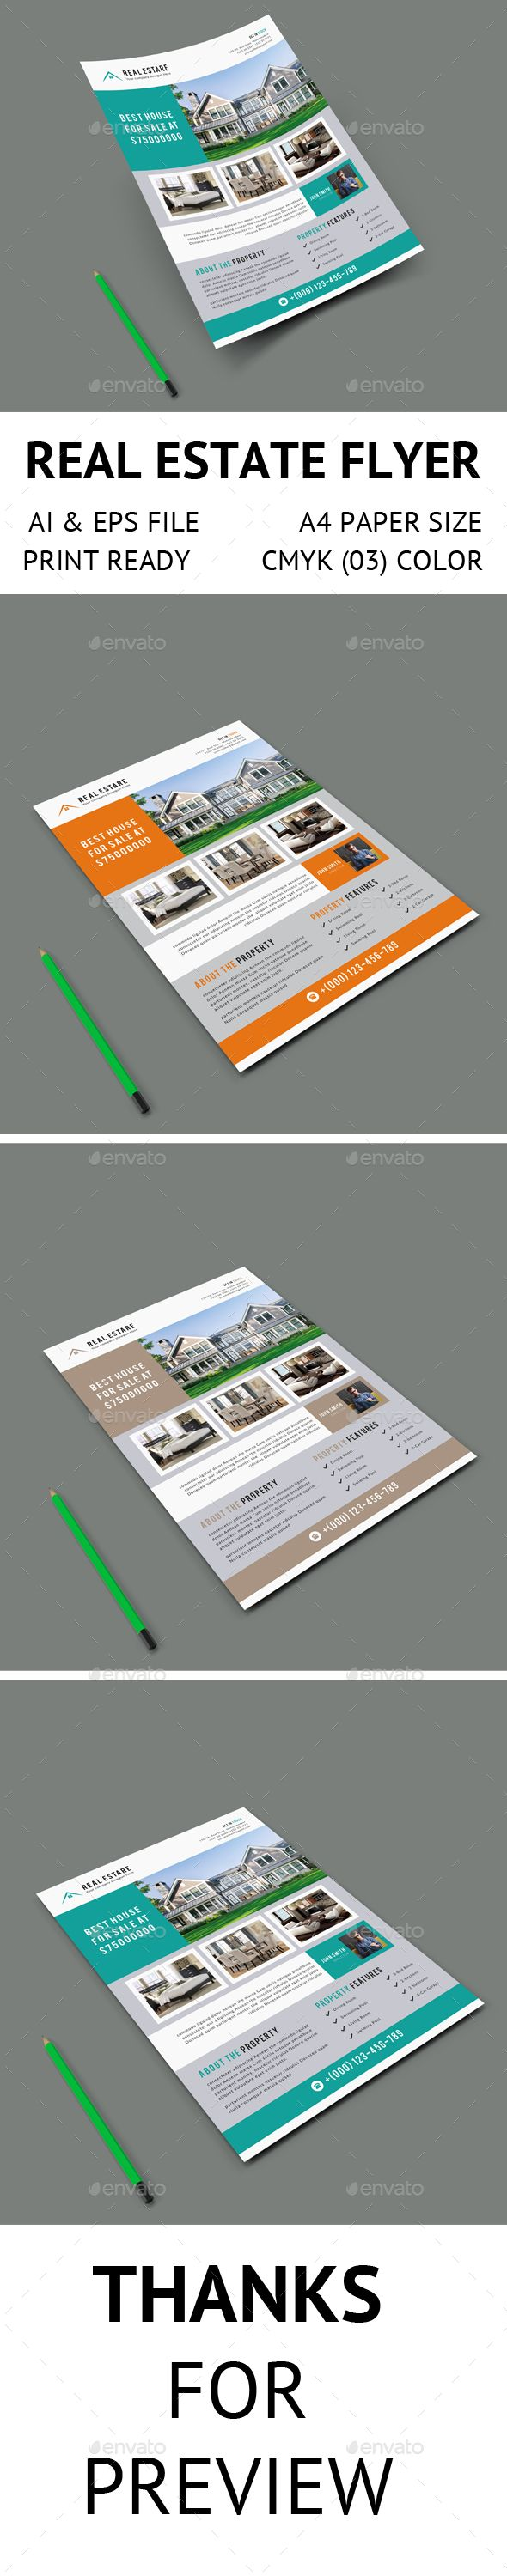 Real Estate Flyer   Real estate flyers, Flyer template and Ai ...